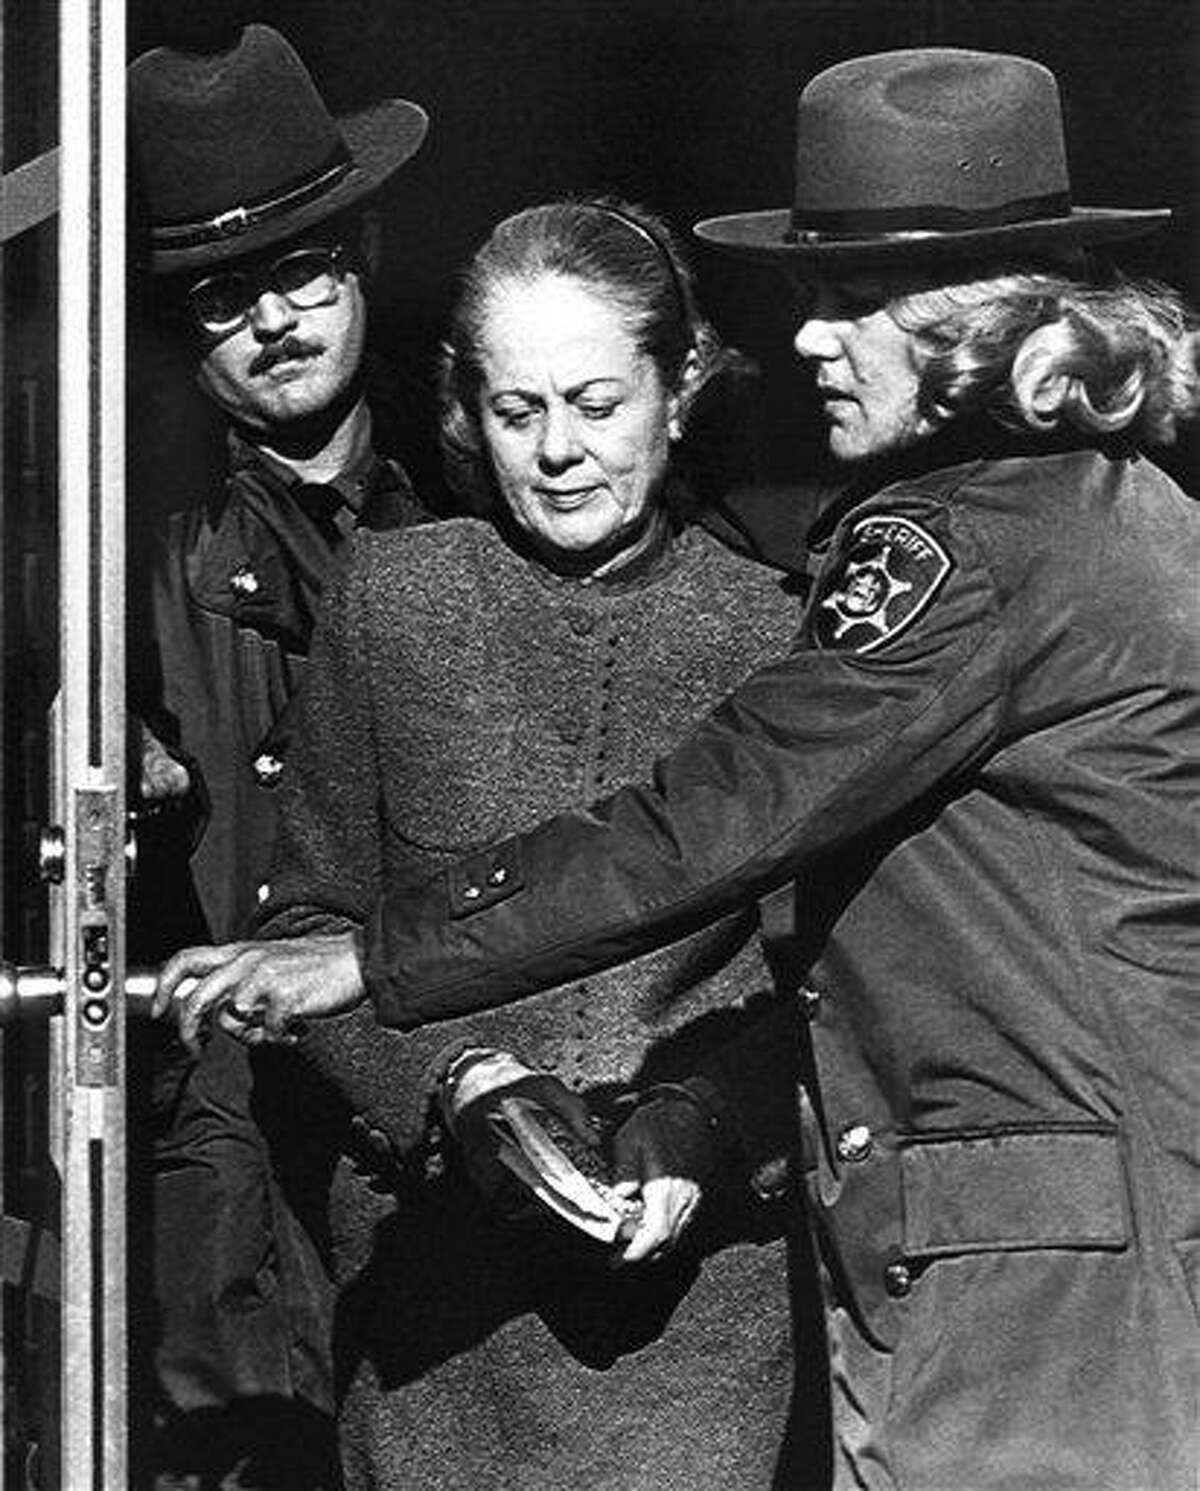 """In this March 20, 1981 file photo, Jean Harris, handcuffed and carrying a book, leaves the Westchester County Jail enroute to the Westchester County Courthouse in Valhalla, N.Y. Harris, the patrician girls' school headmistress who spent 12 years in prison for the 1980 killing of her longtime lover, """"Scarsdale Diet"""" doctor Herman Tarnower, in a case that rallied feminists and inspired television movies, died Sunday, Dec. 23, 2012, in New Haven, Conn. She was 89. AP Photo/Ron Frehm, File"""